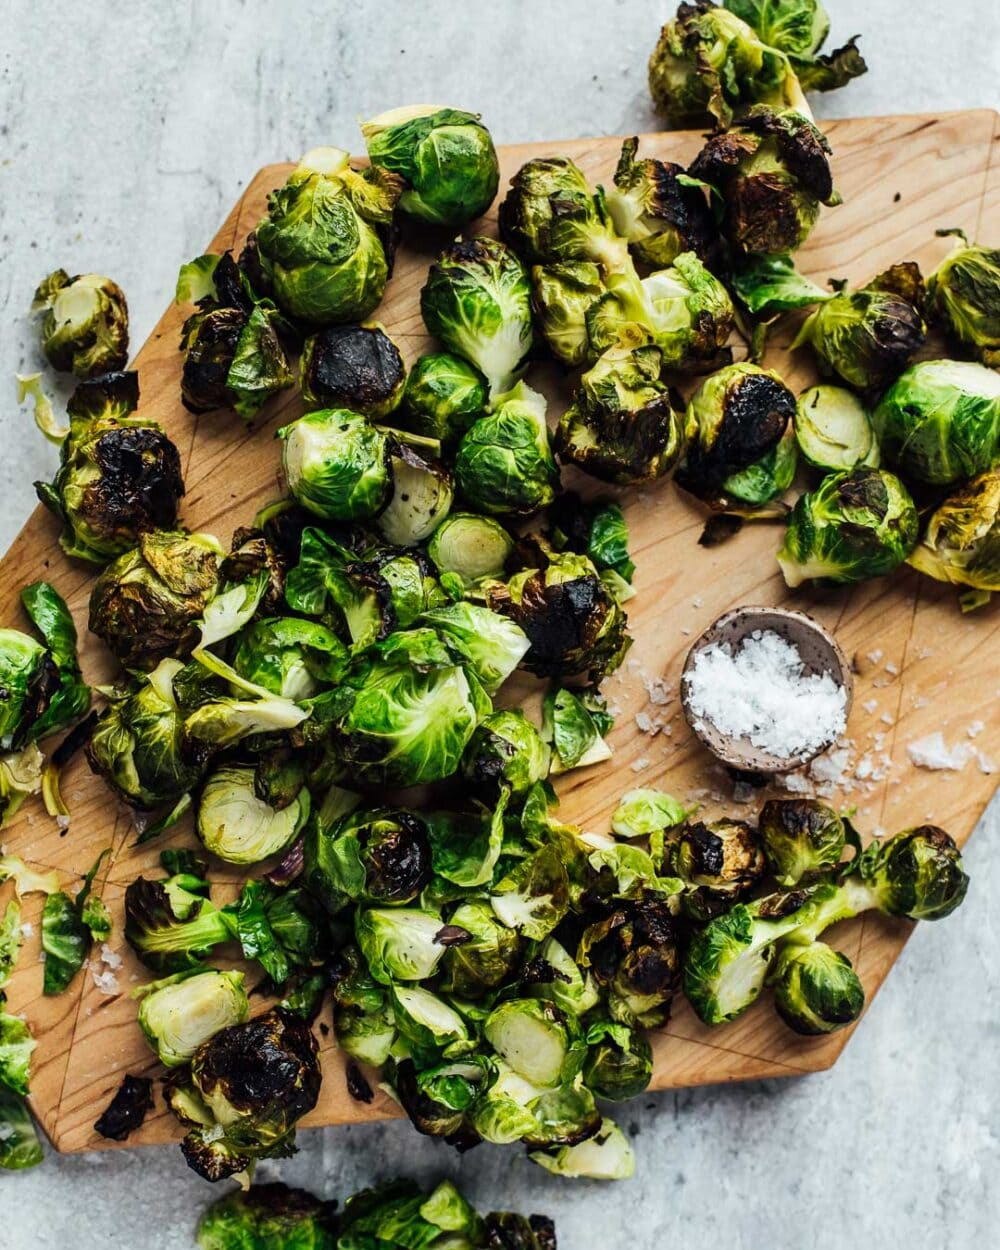 grilled brussels sprouts on a cutting board